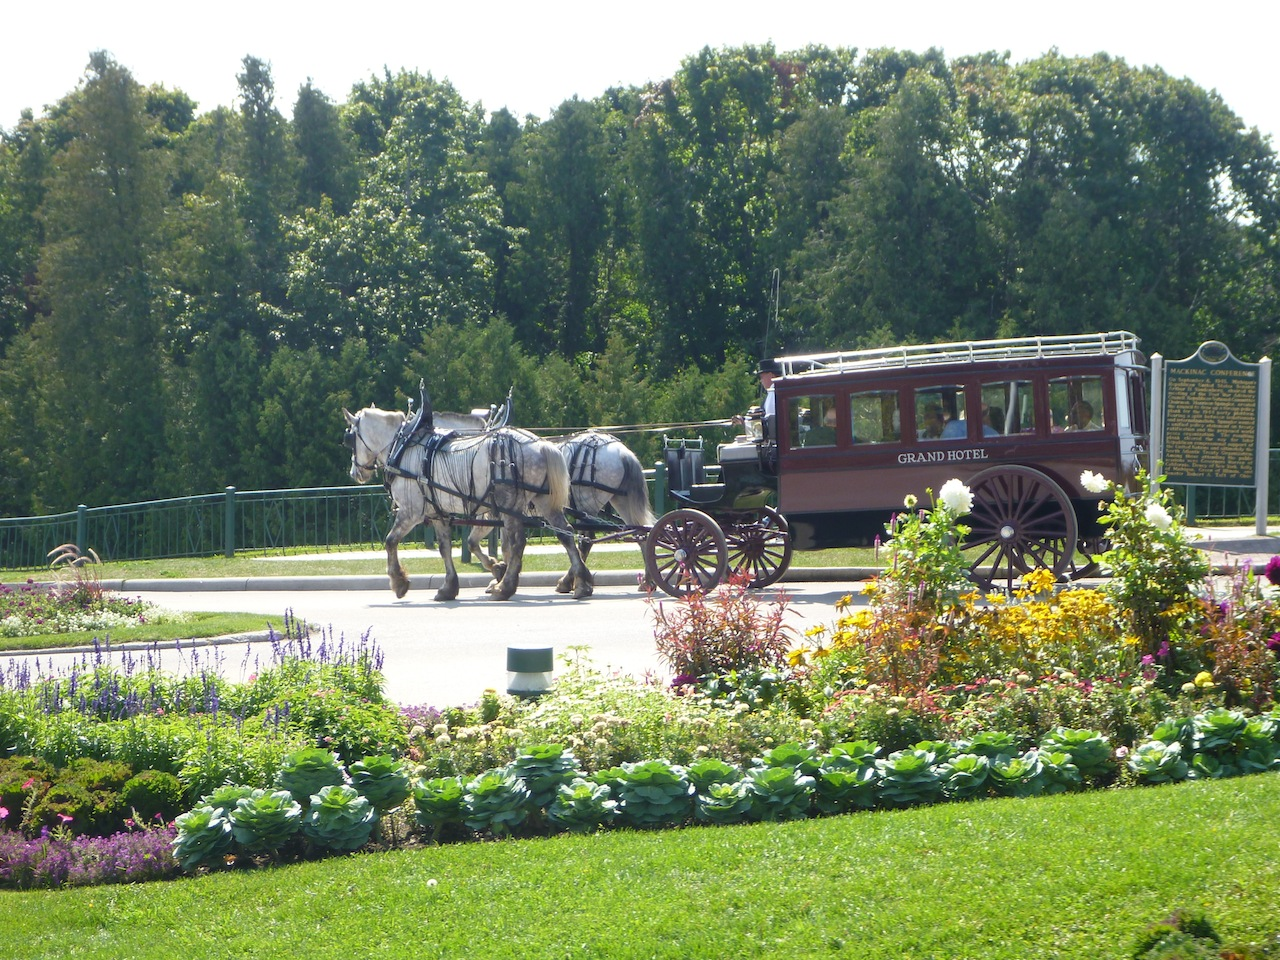 The Grand Hotel Horse And Carriage.